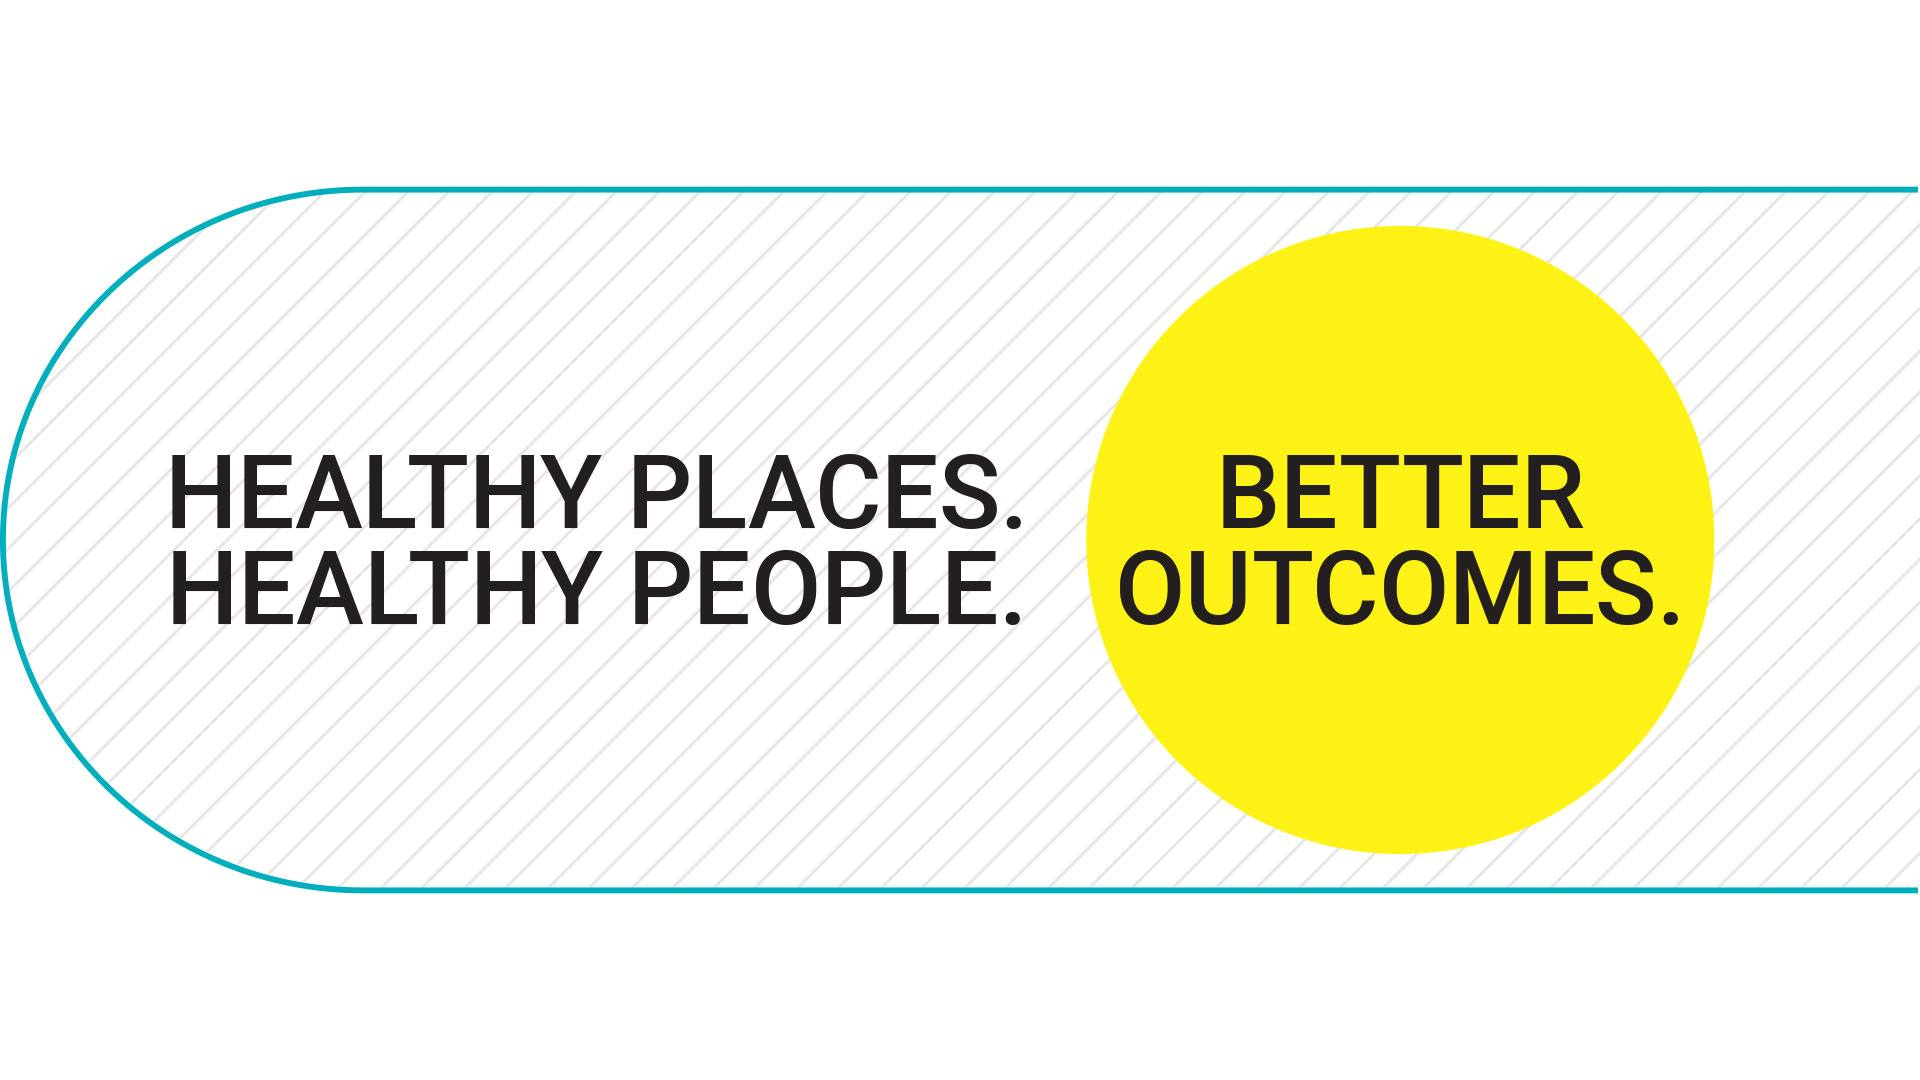 Well Living Lab logo: Healthy places. Healthy people. Better outcomes.